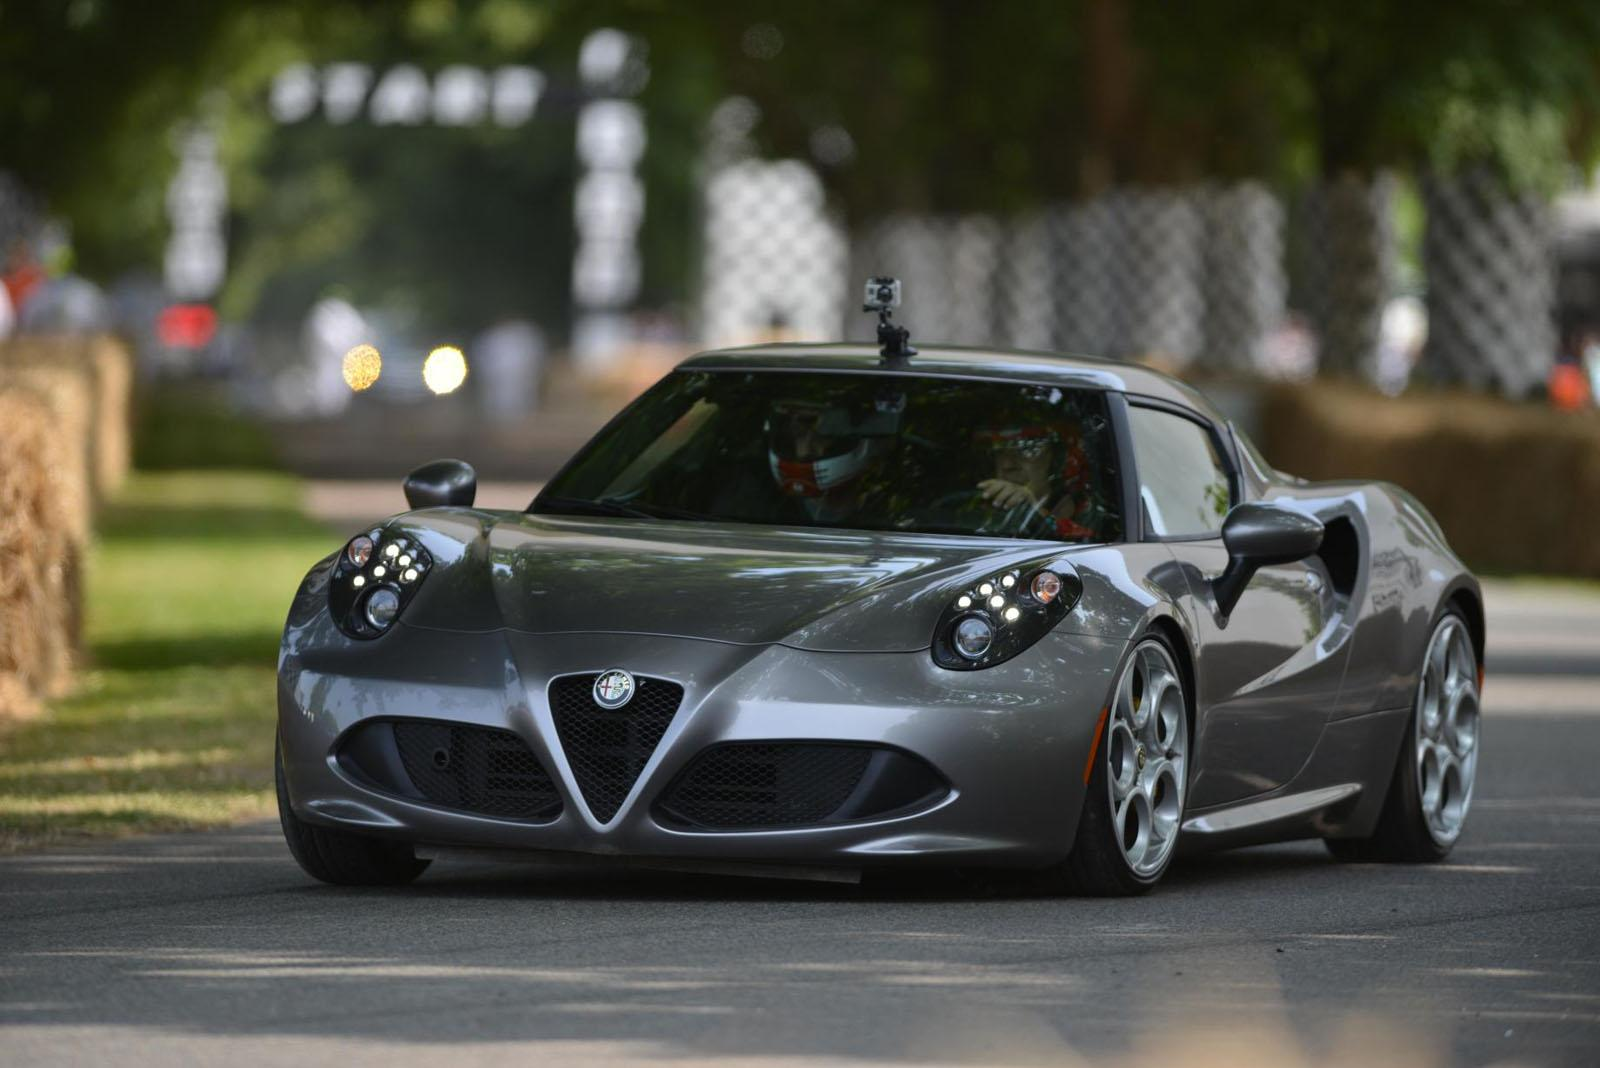 Alfa Romeo Cars News 4c Debuts At Goodwood Festival